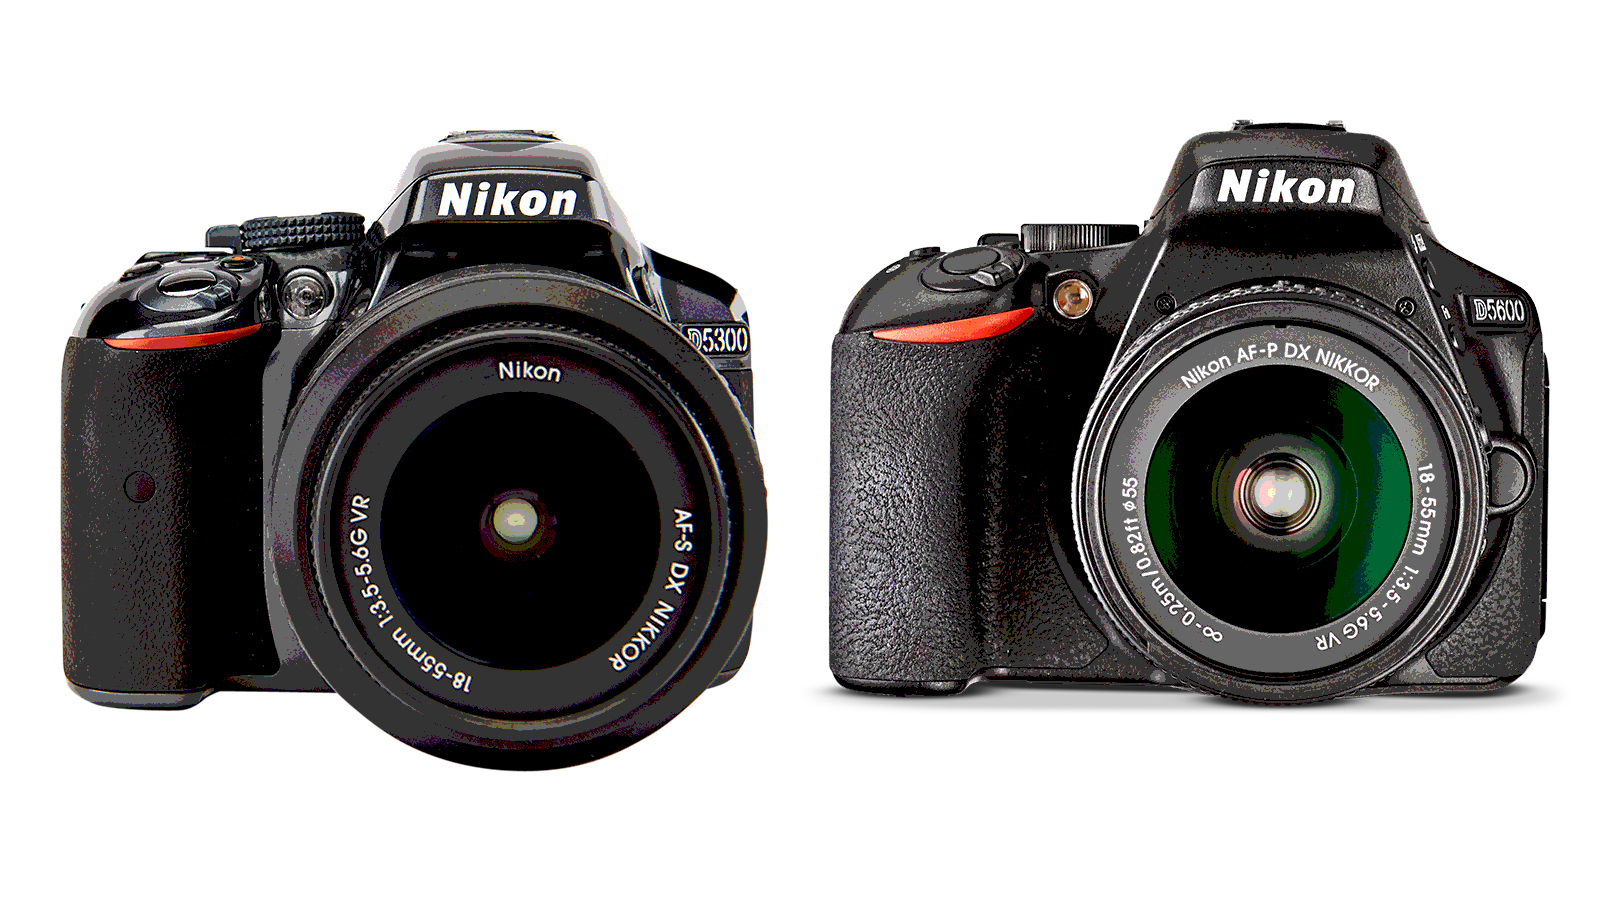 Nikon D5300 vs Nikon D5600: Which camera should you buy